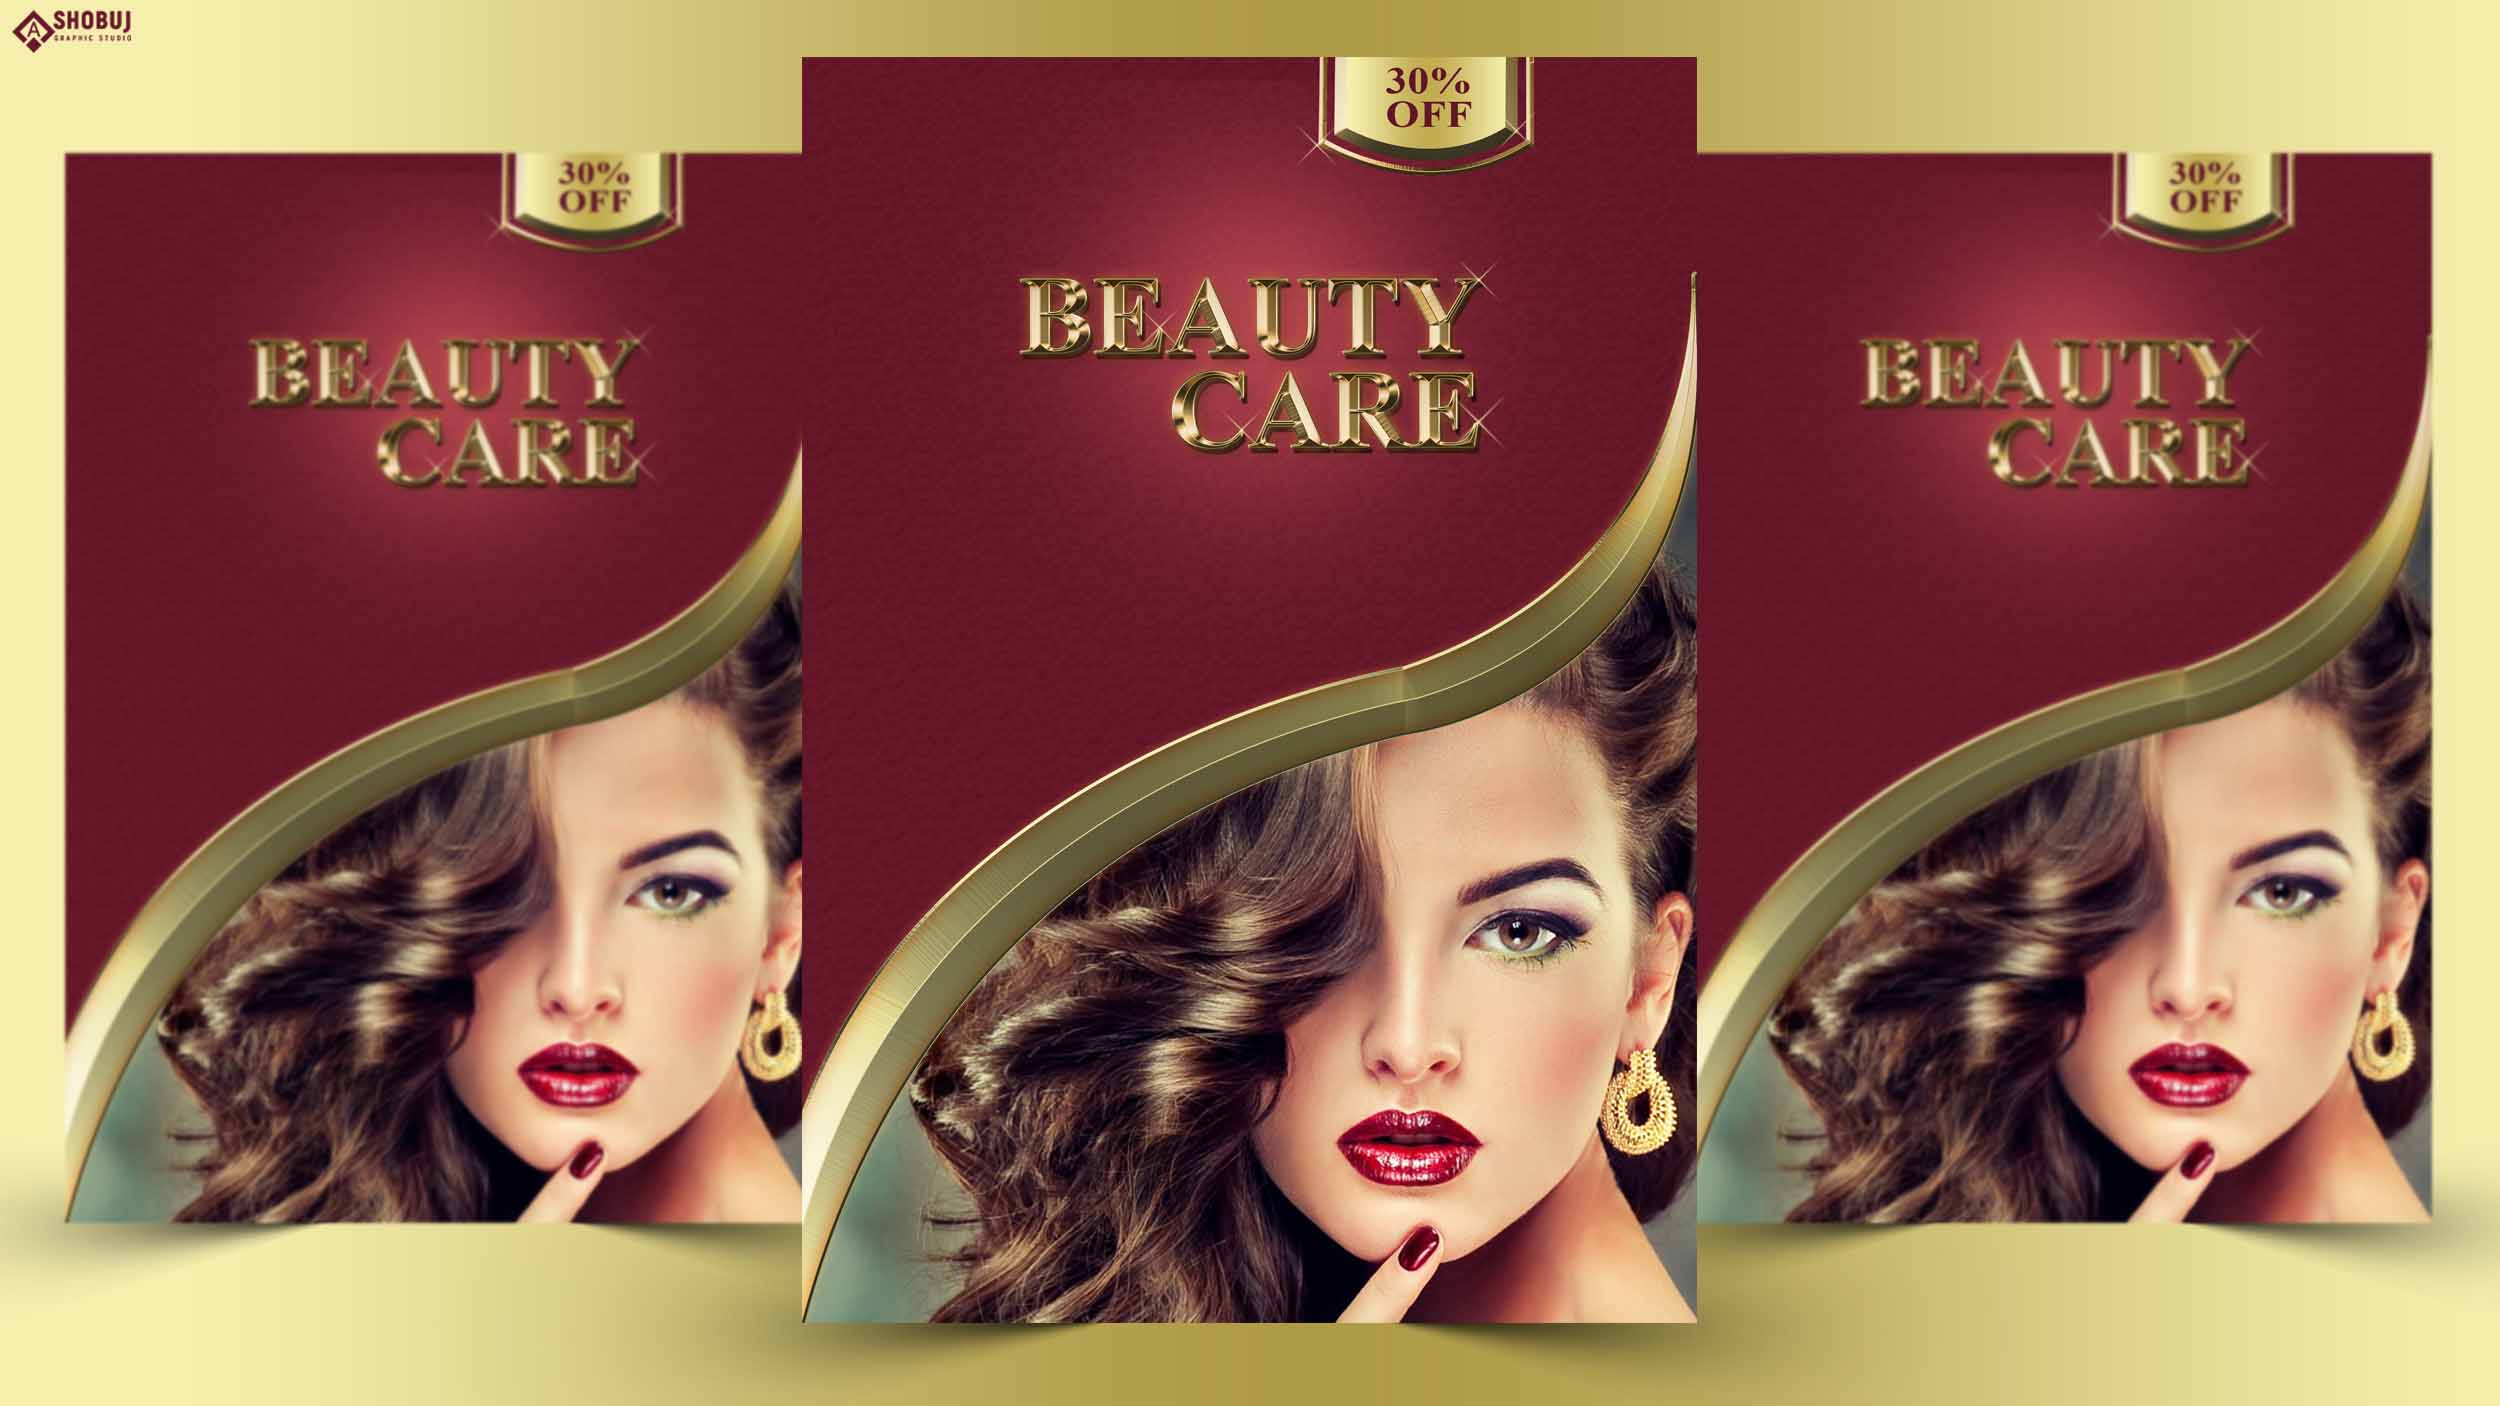 Beauty Care Flyer Design Template